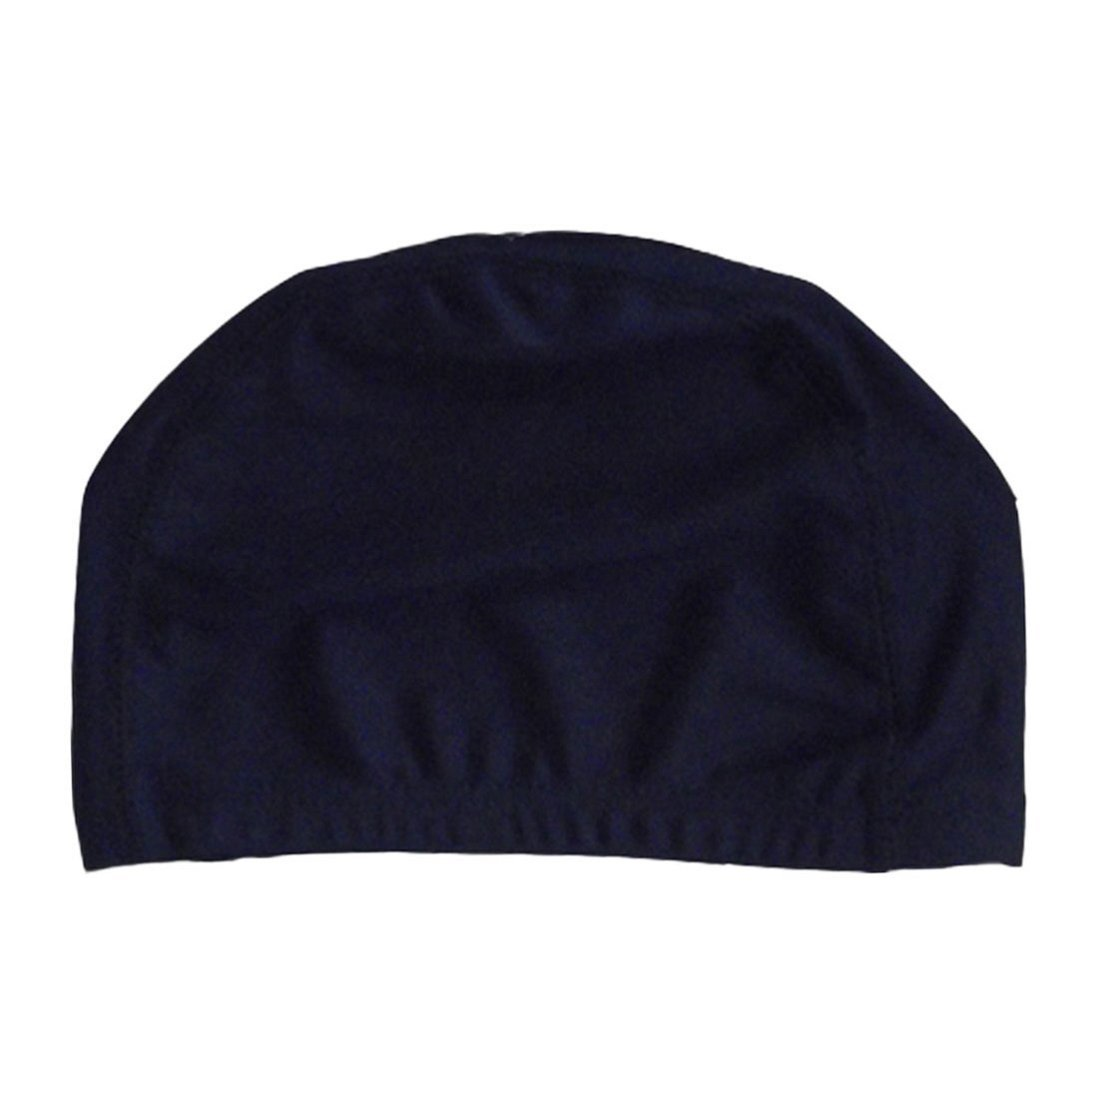 Outtop Swimming Cap Swim Hat [Unisex Adult] New [Polyester + Nylon] [Elasticity] [Soft Comfortable] [Hydrodynamic Design] [Red,rose,pink,armygreen,purple,blue,gray,darkblue] One Size Fit All, Very Comfortable to Wear